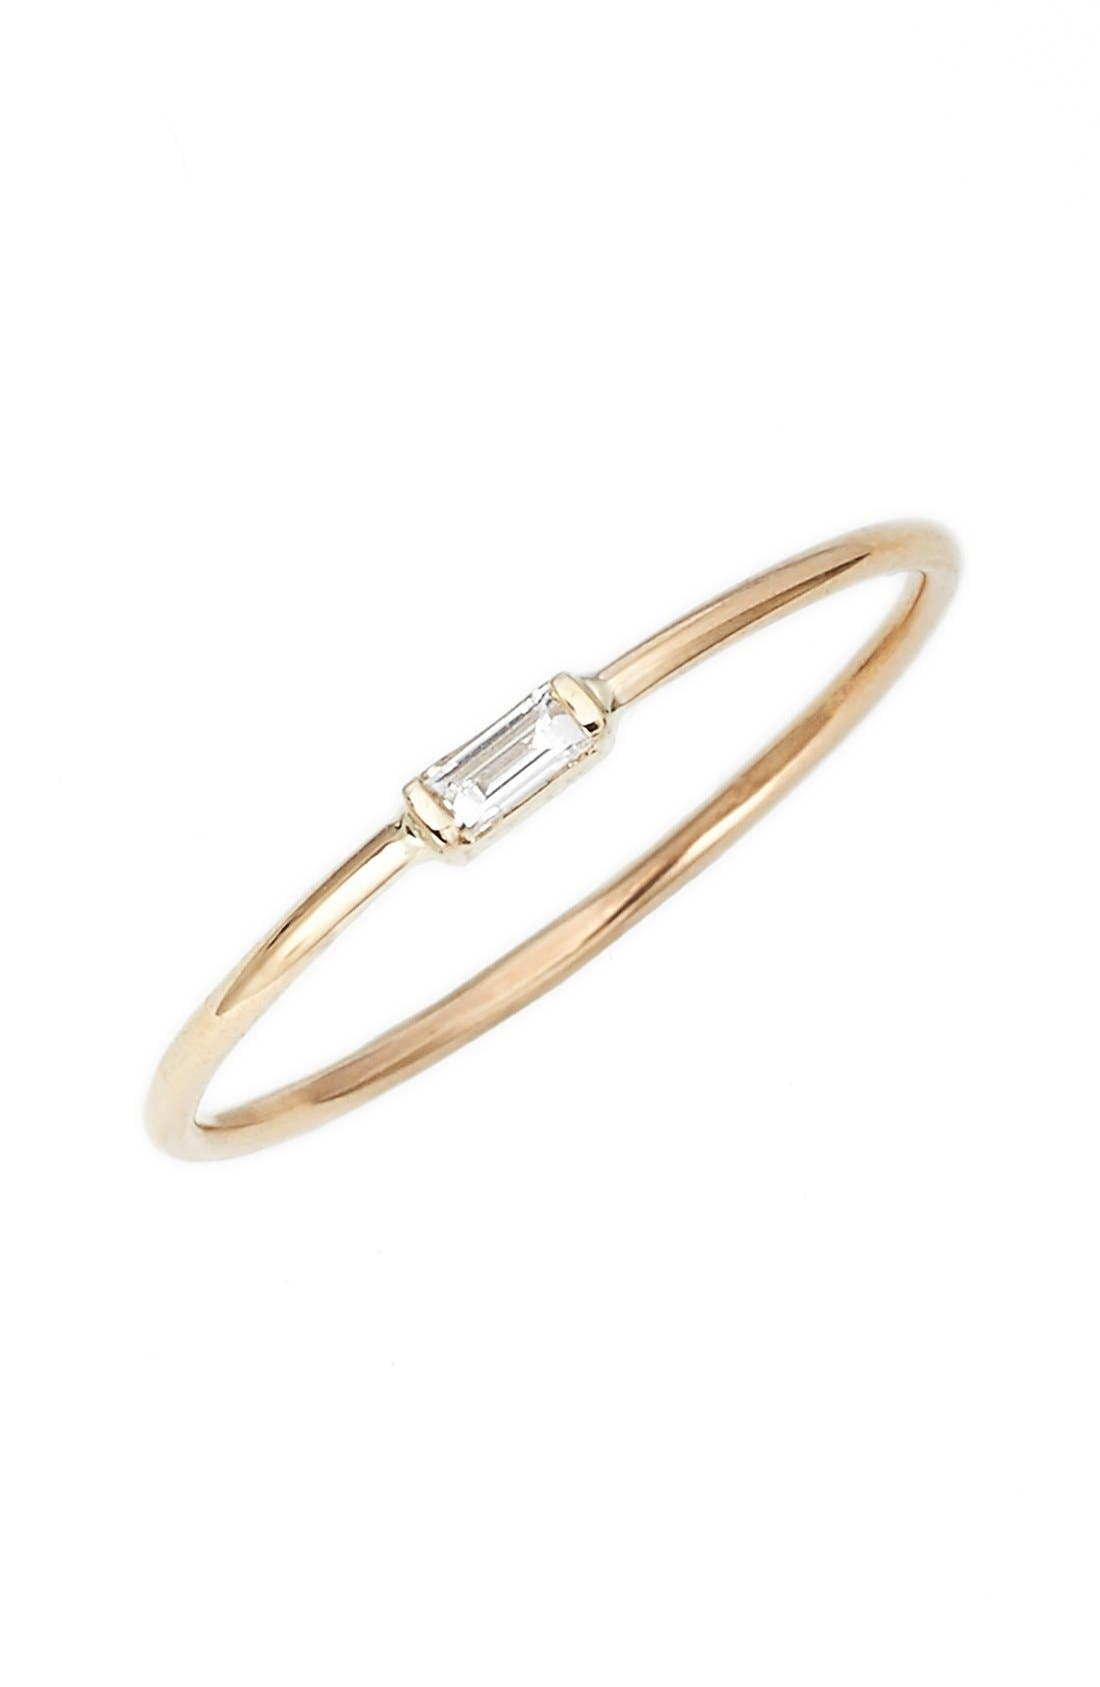 Baguette Diamond Stacking Ring,                         Main,                         color, YELLOW GOLD